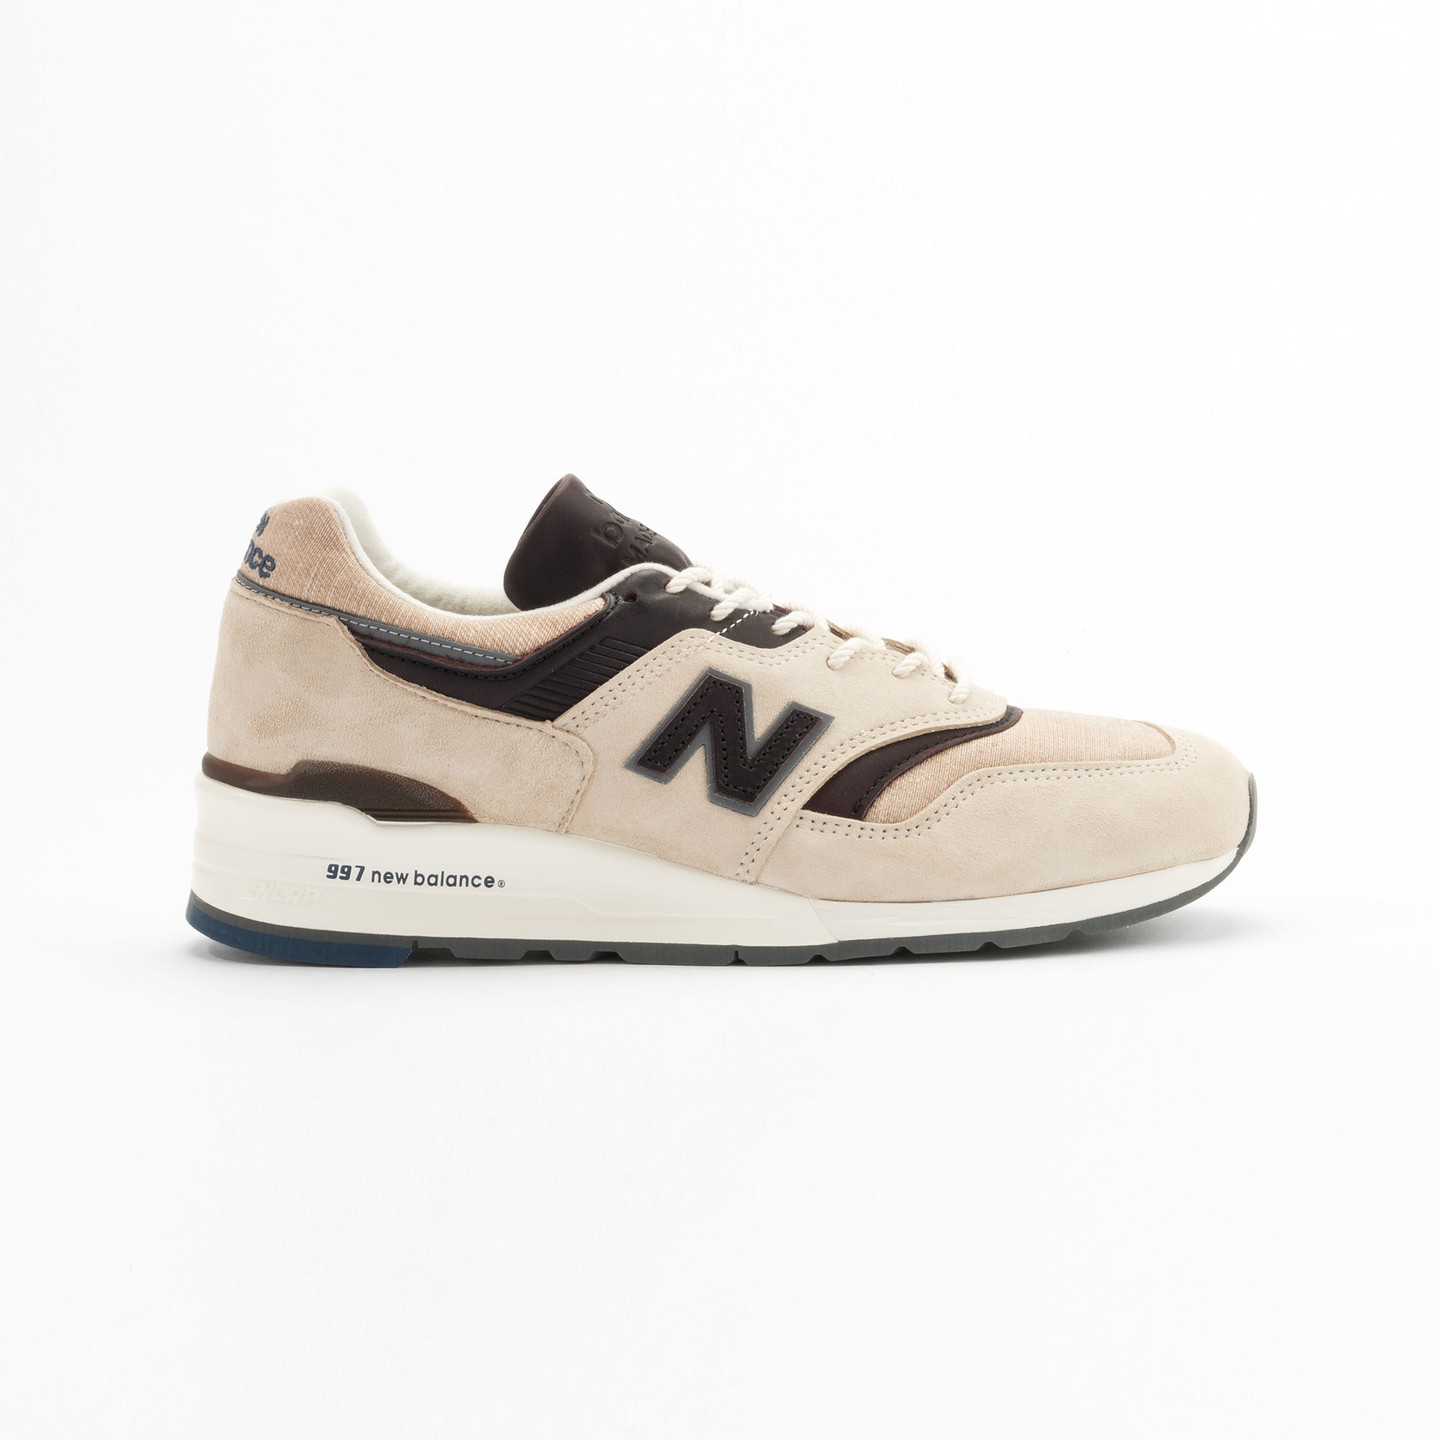 New Balance M997 DSAI - Made in USA Sand / Antique Brown M997DSAI-44.5